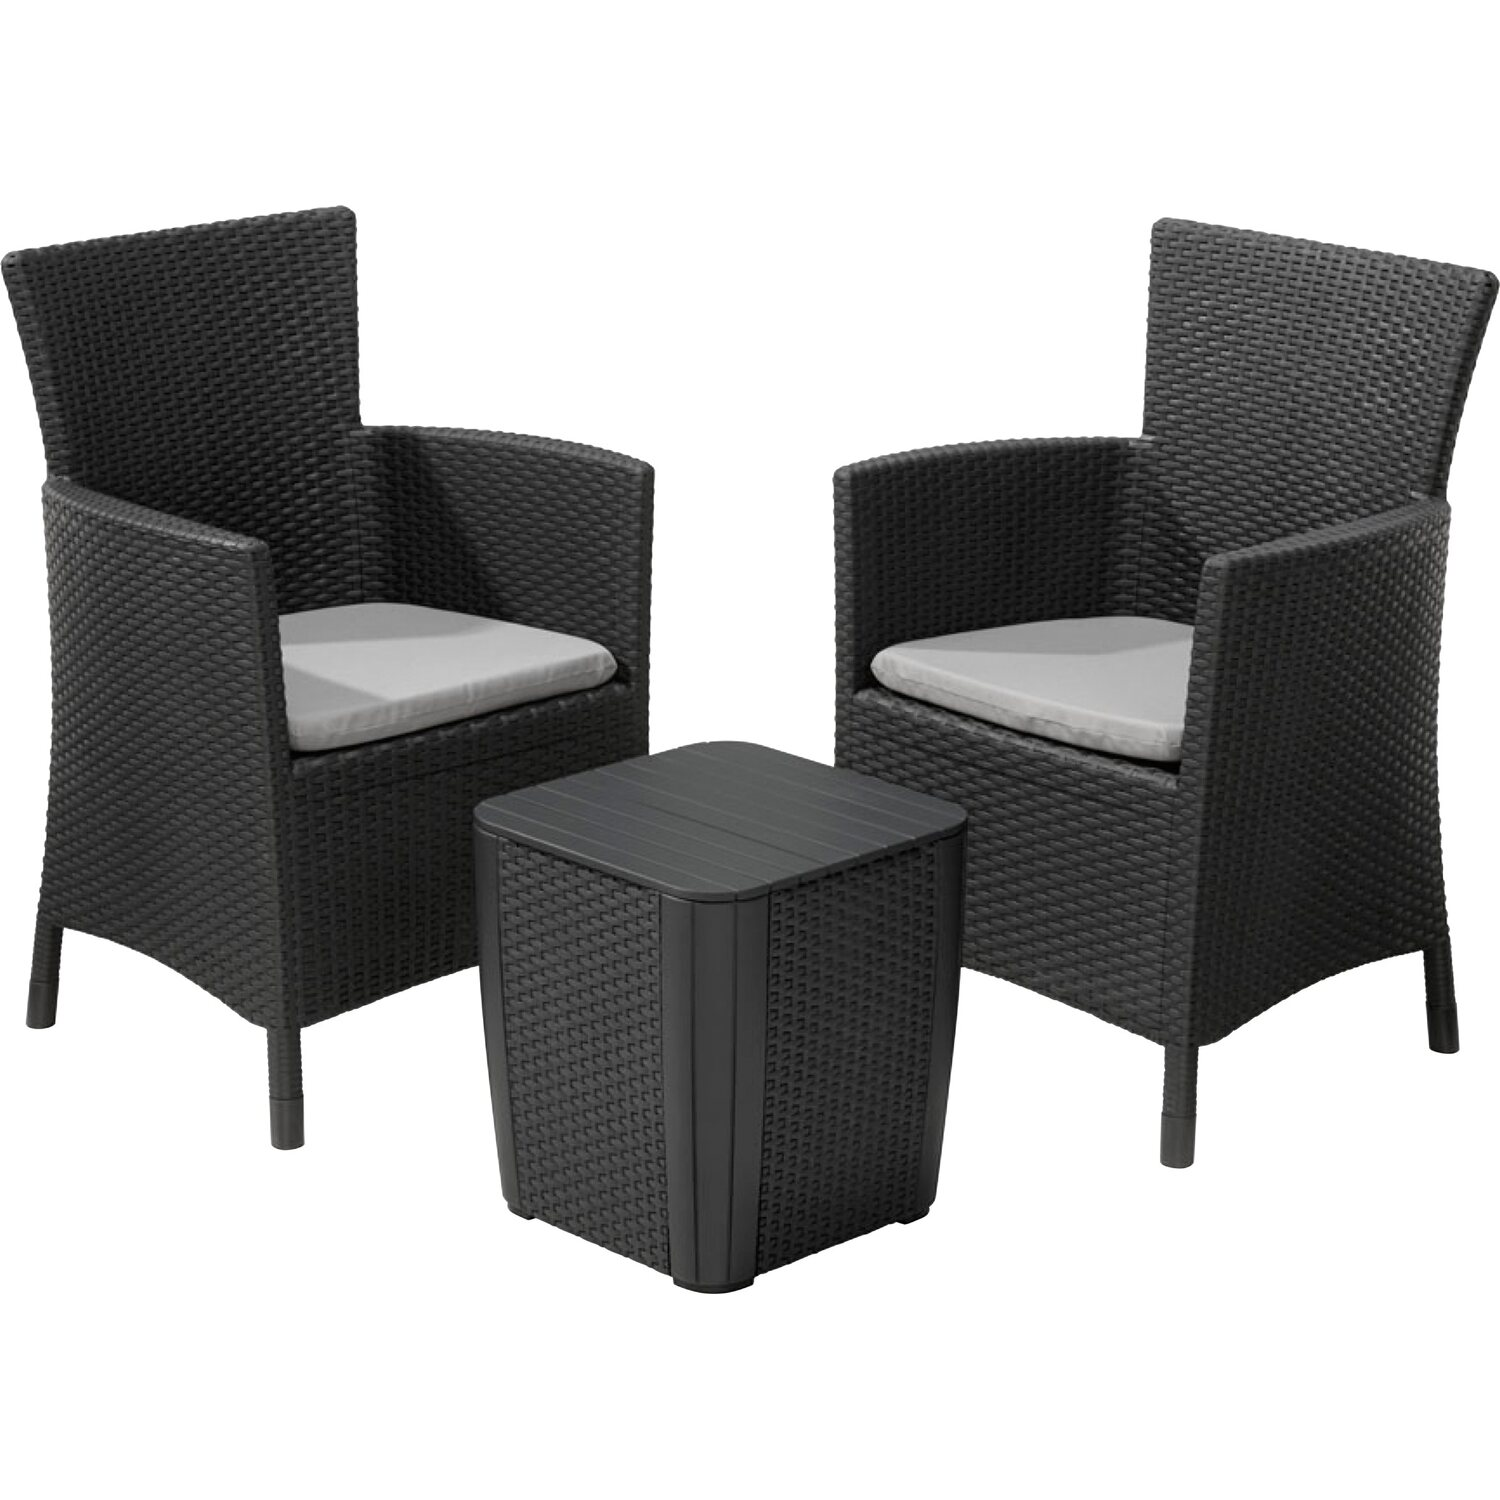 kunststoffwicker balkon set iowa kaufen bei obi. Black Bedroom Furniture Sets. Home Design Ideas